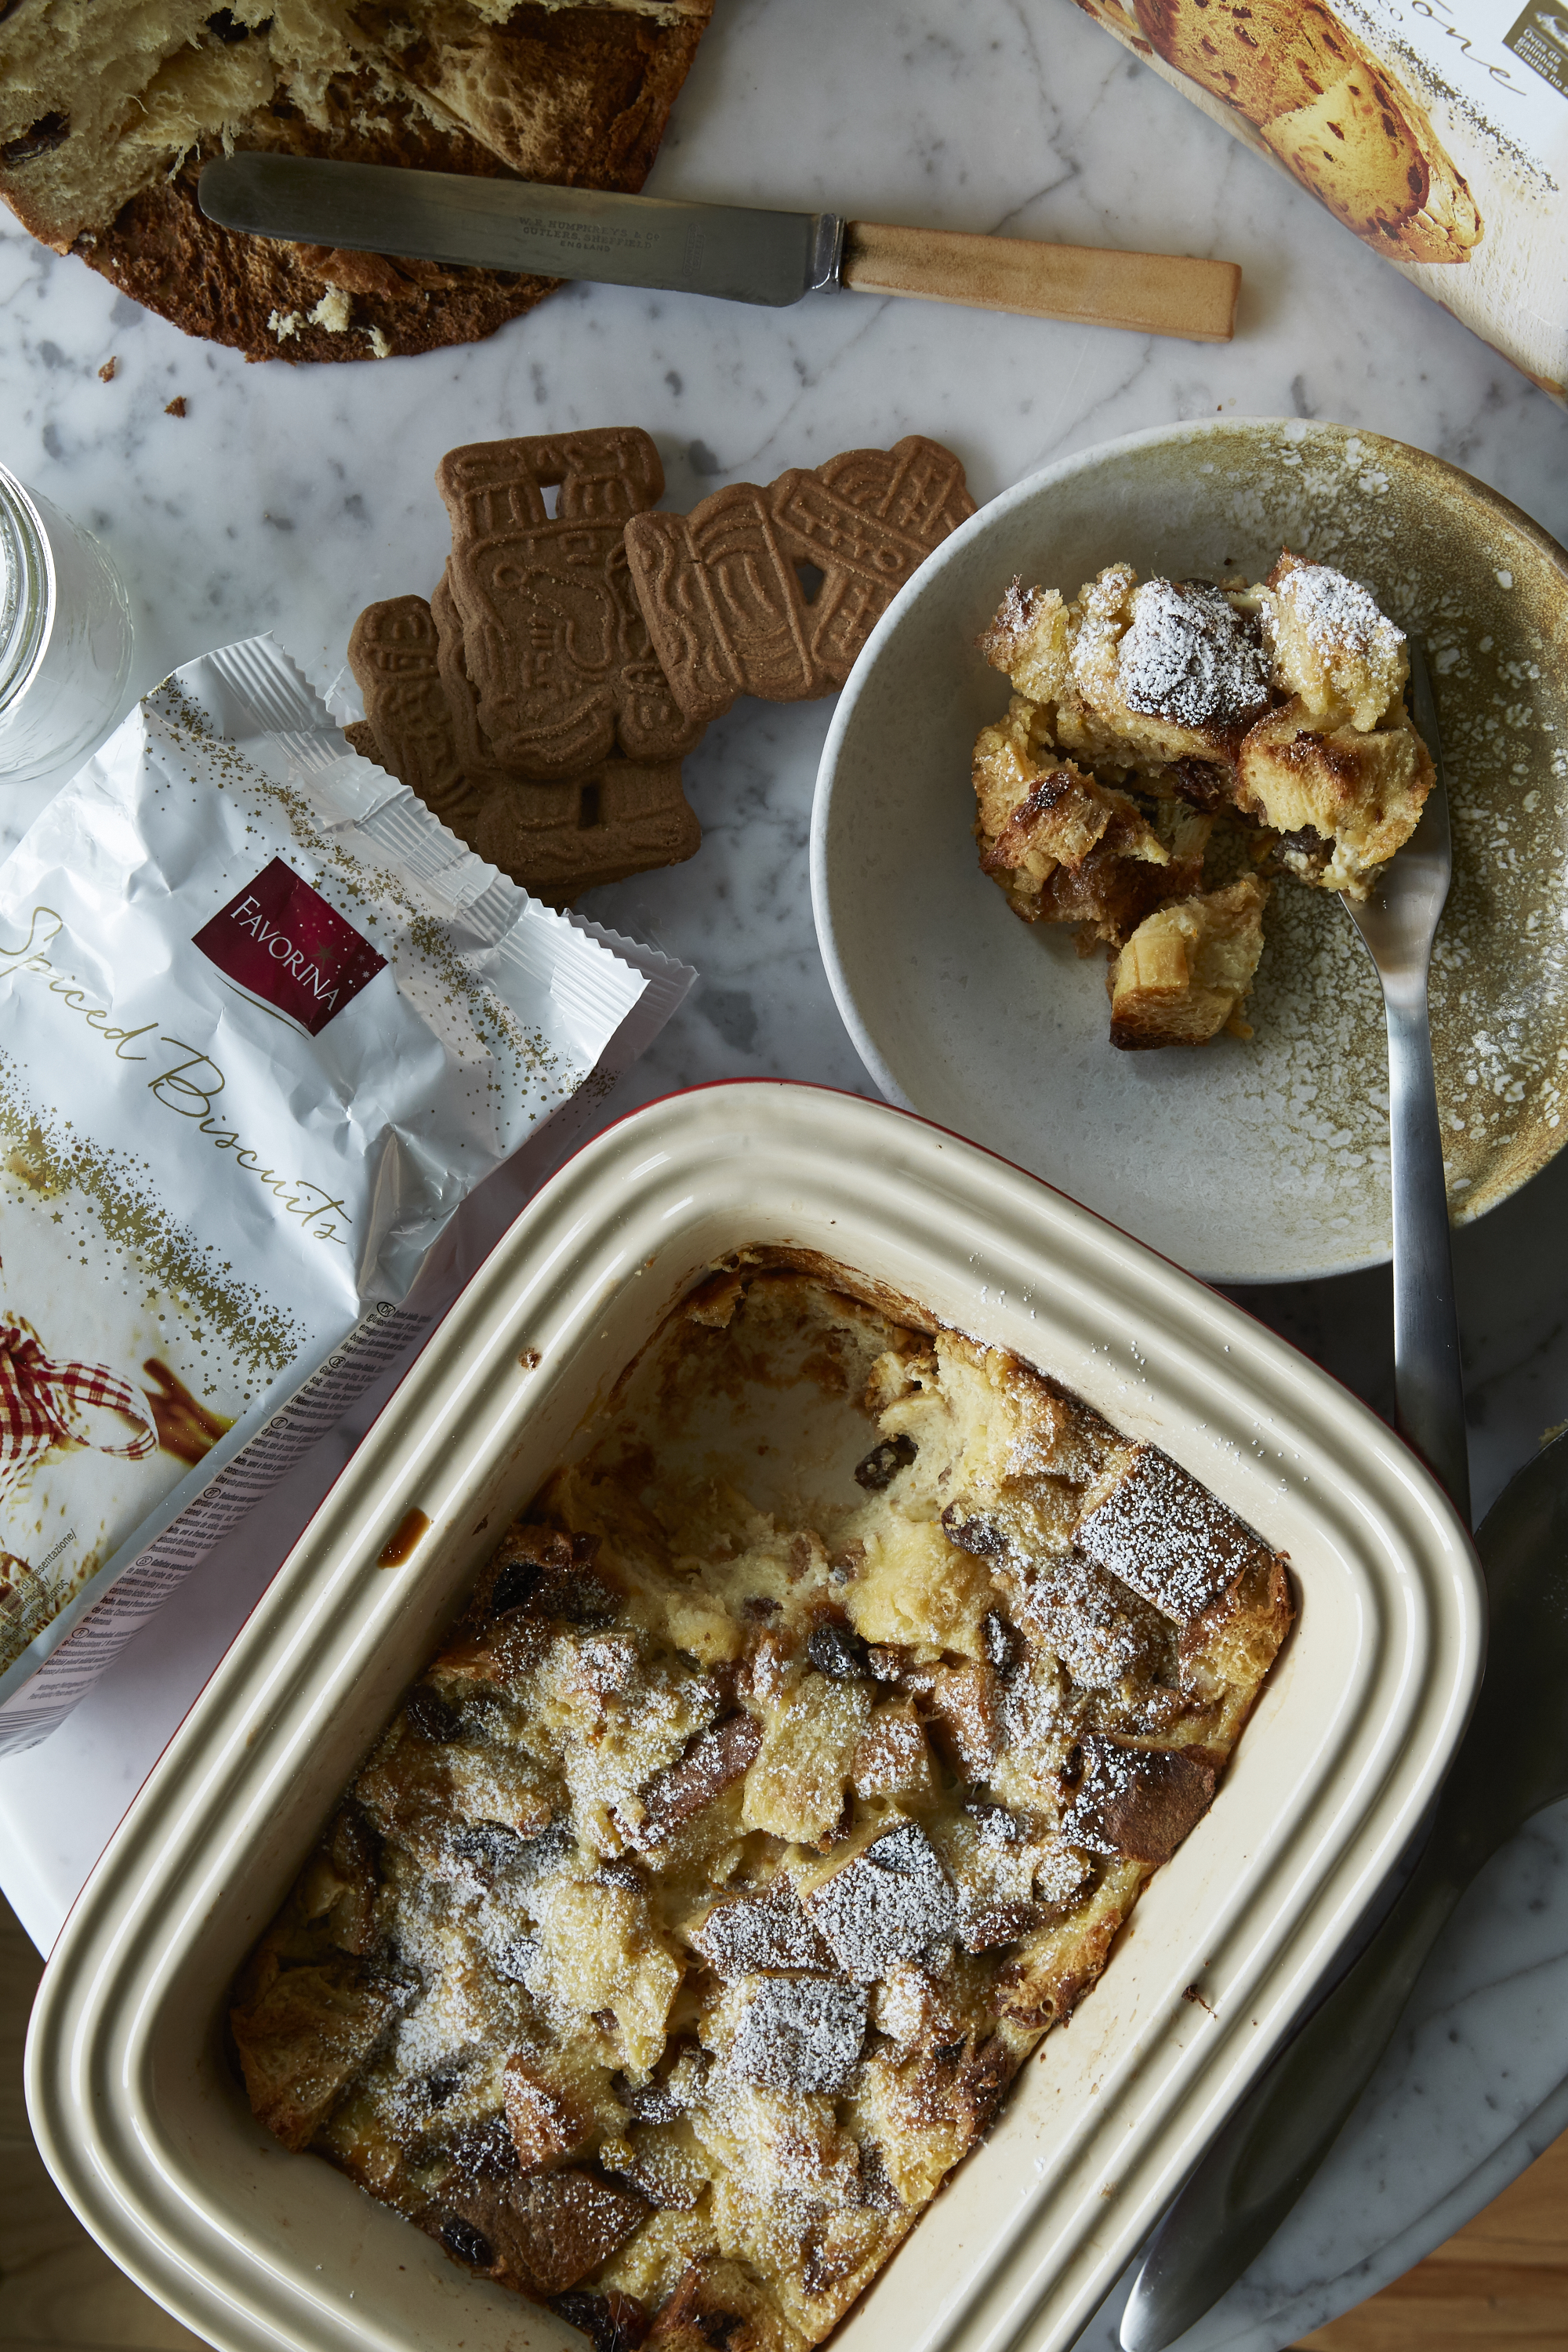 lidl-bread-pudding-lidl-panettone-bread-pudding0214